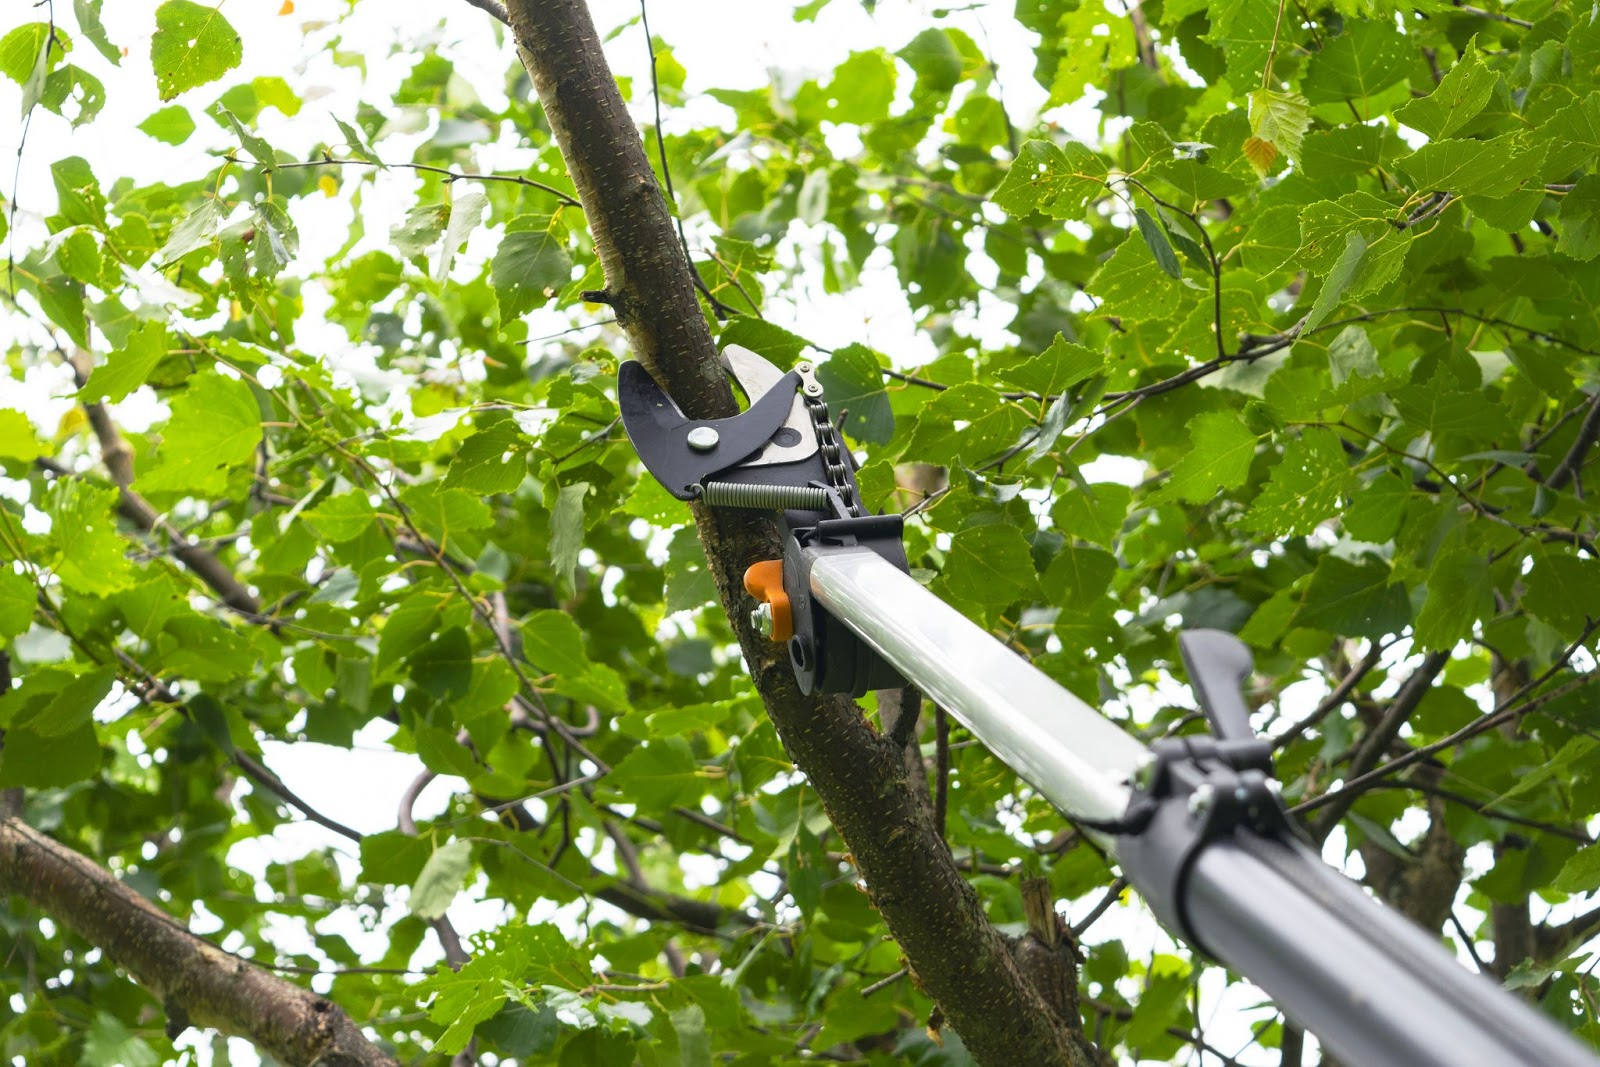 Image of pruning shears prepared to cut a branch in the middle of green leaves as part of our shrub trimming service.